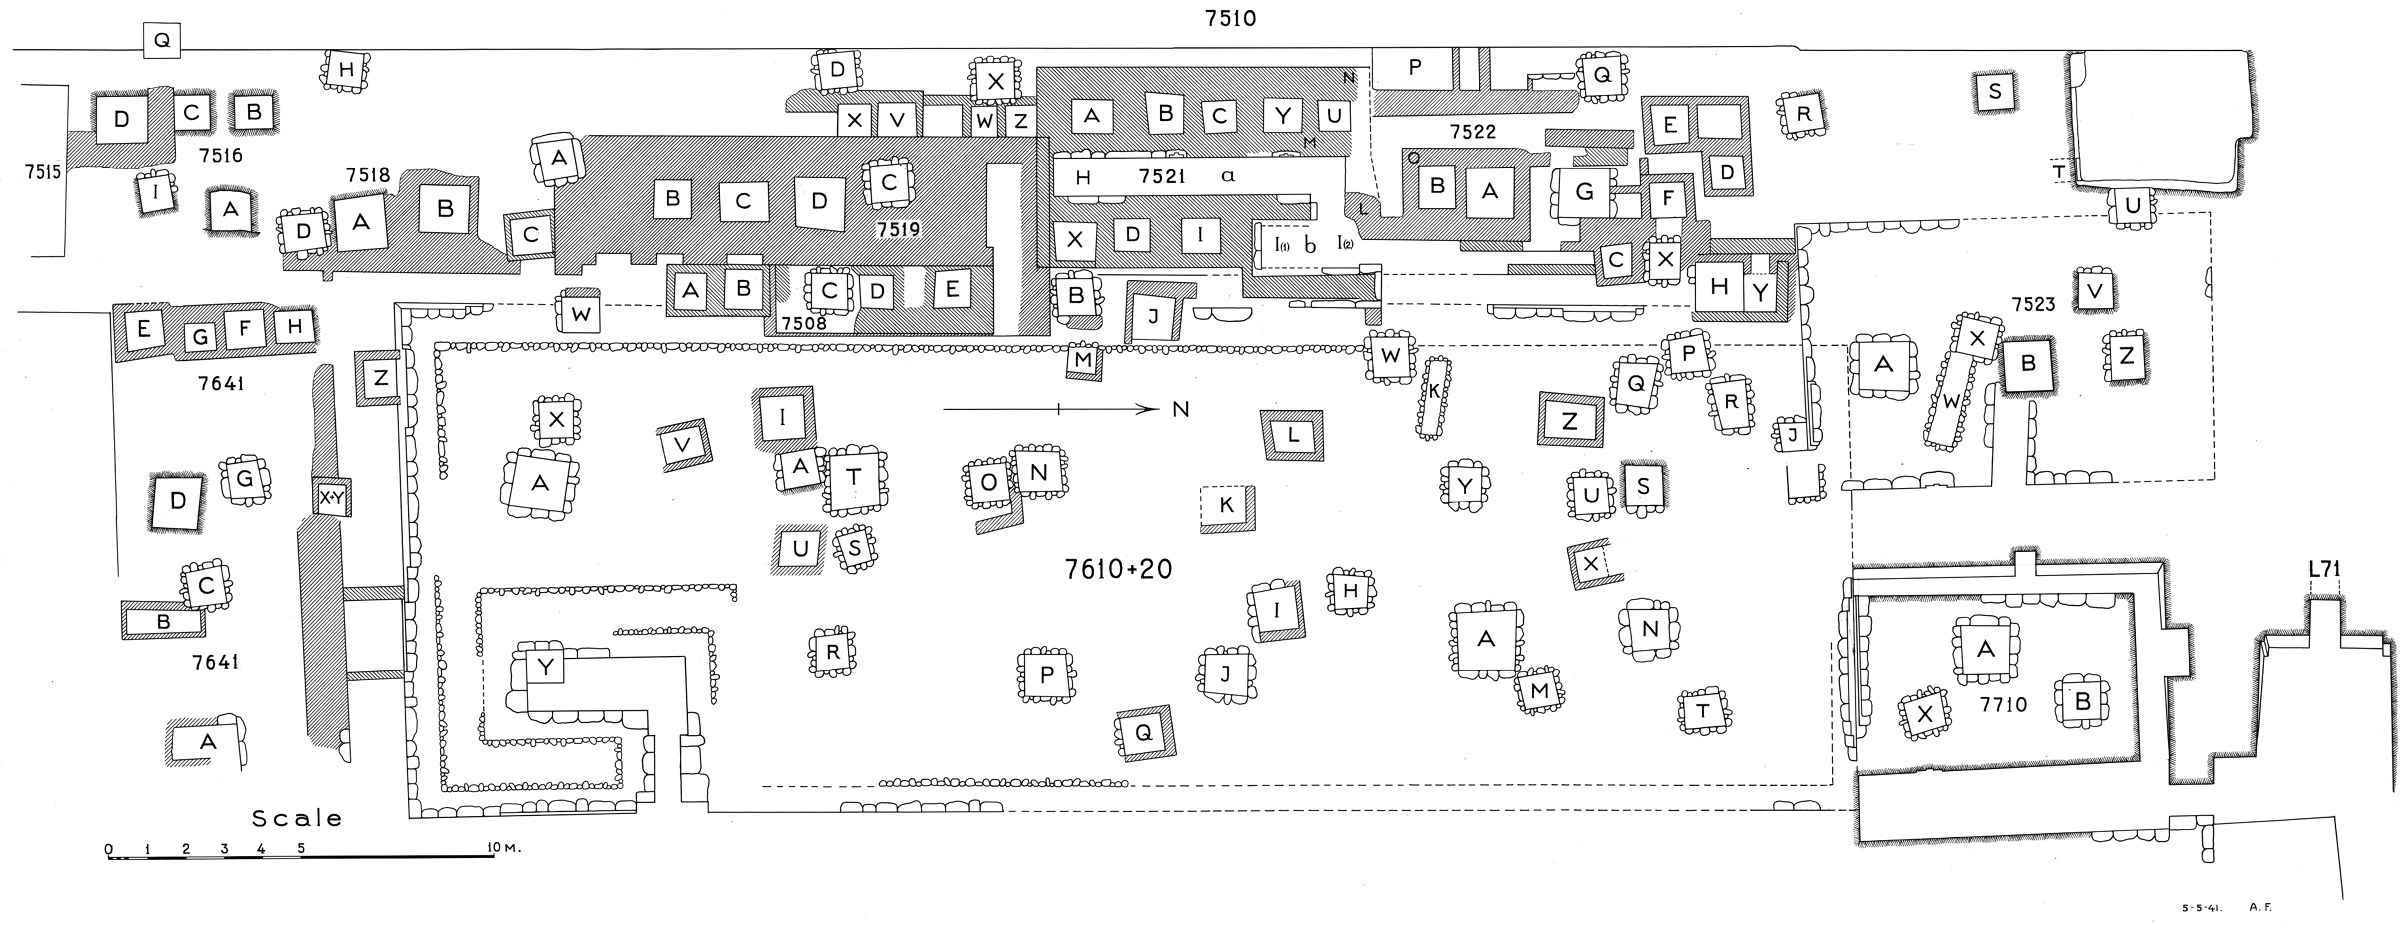 Maps and plans: Plan of cemetery G 7000: G 7500s and G 7600s